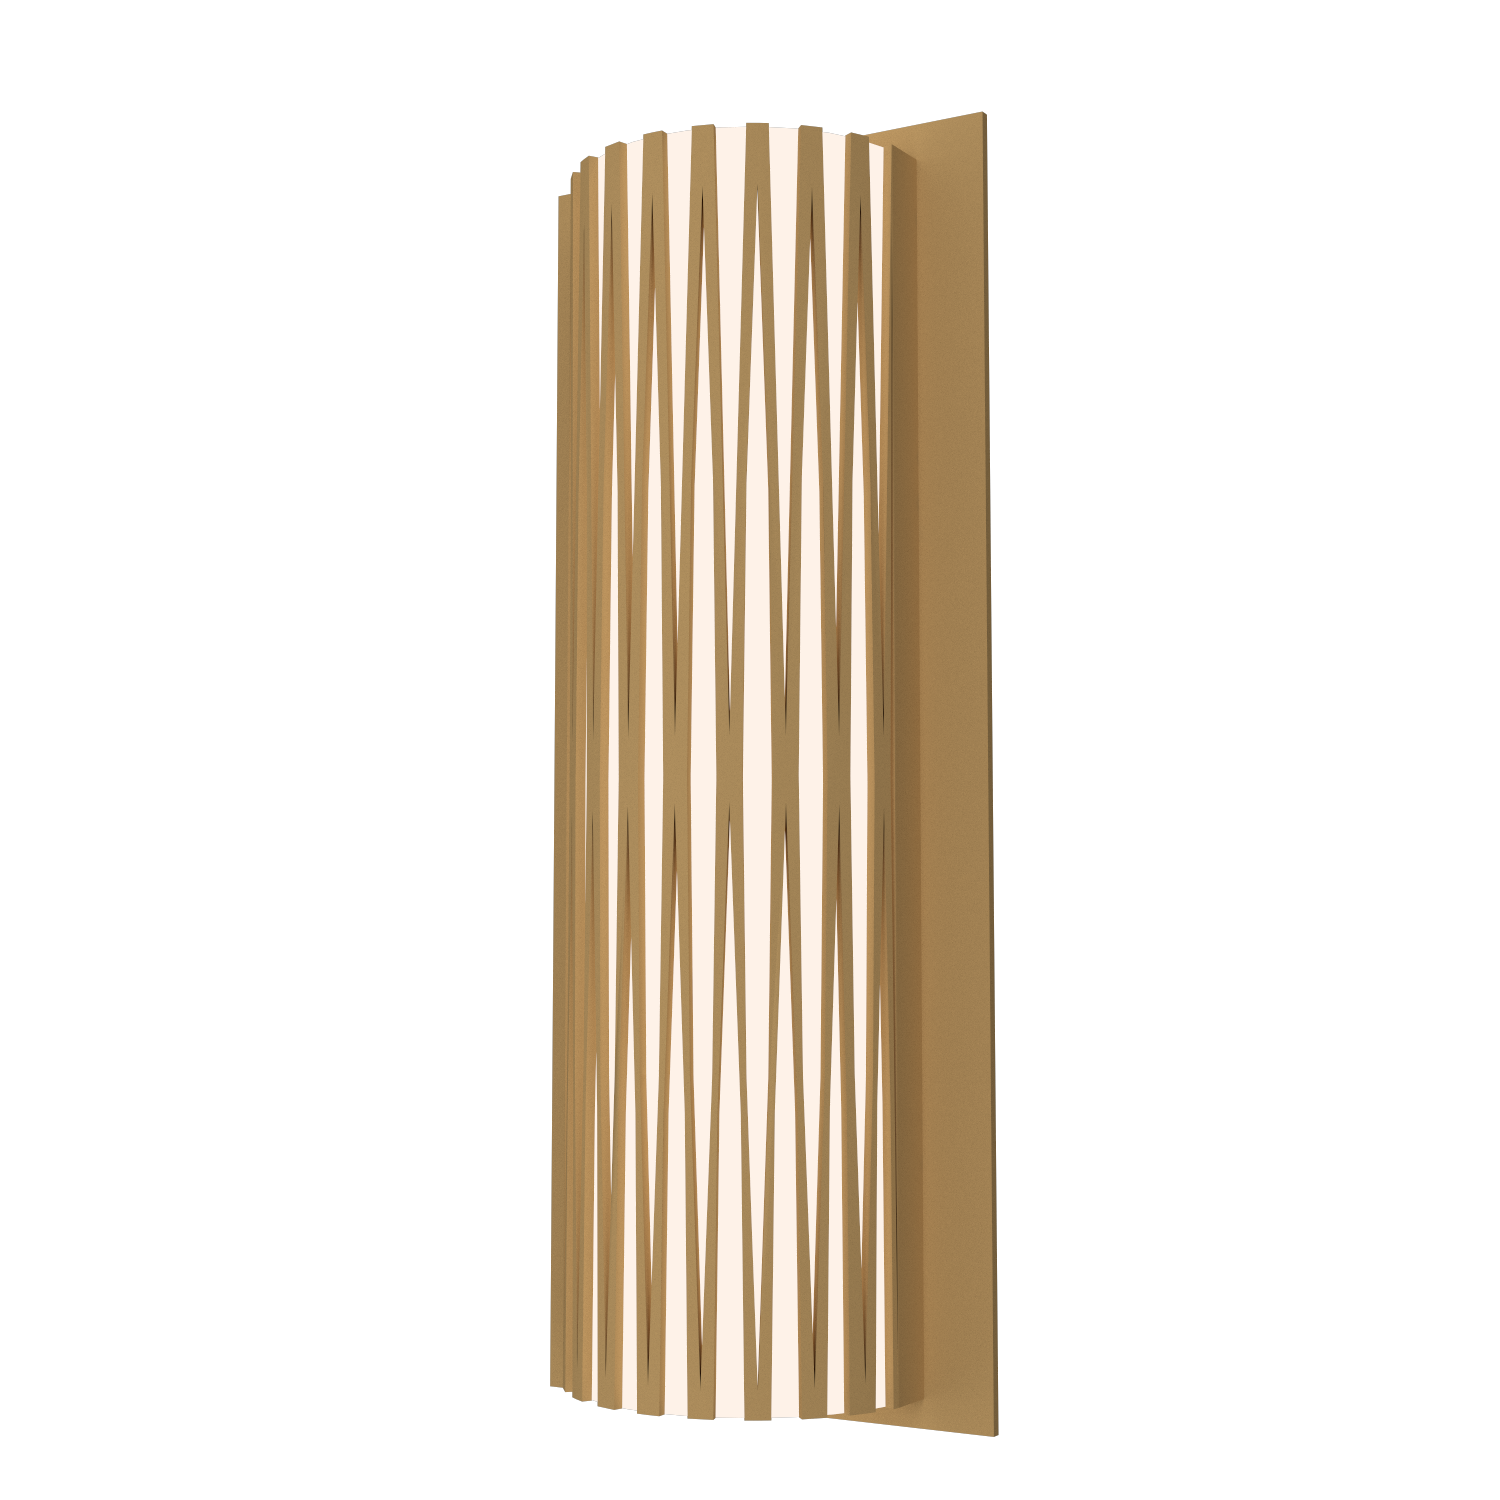 Wall Lamp Accord Living Hinges 4071 - Living Hinges Line Accord Lighting | 27. Gold